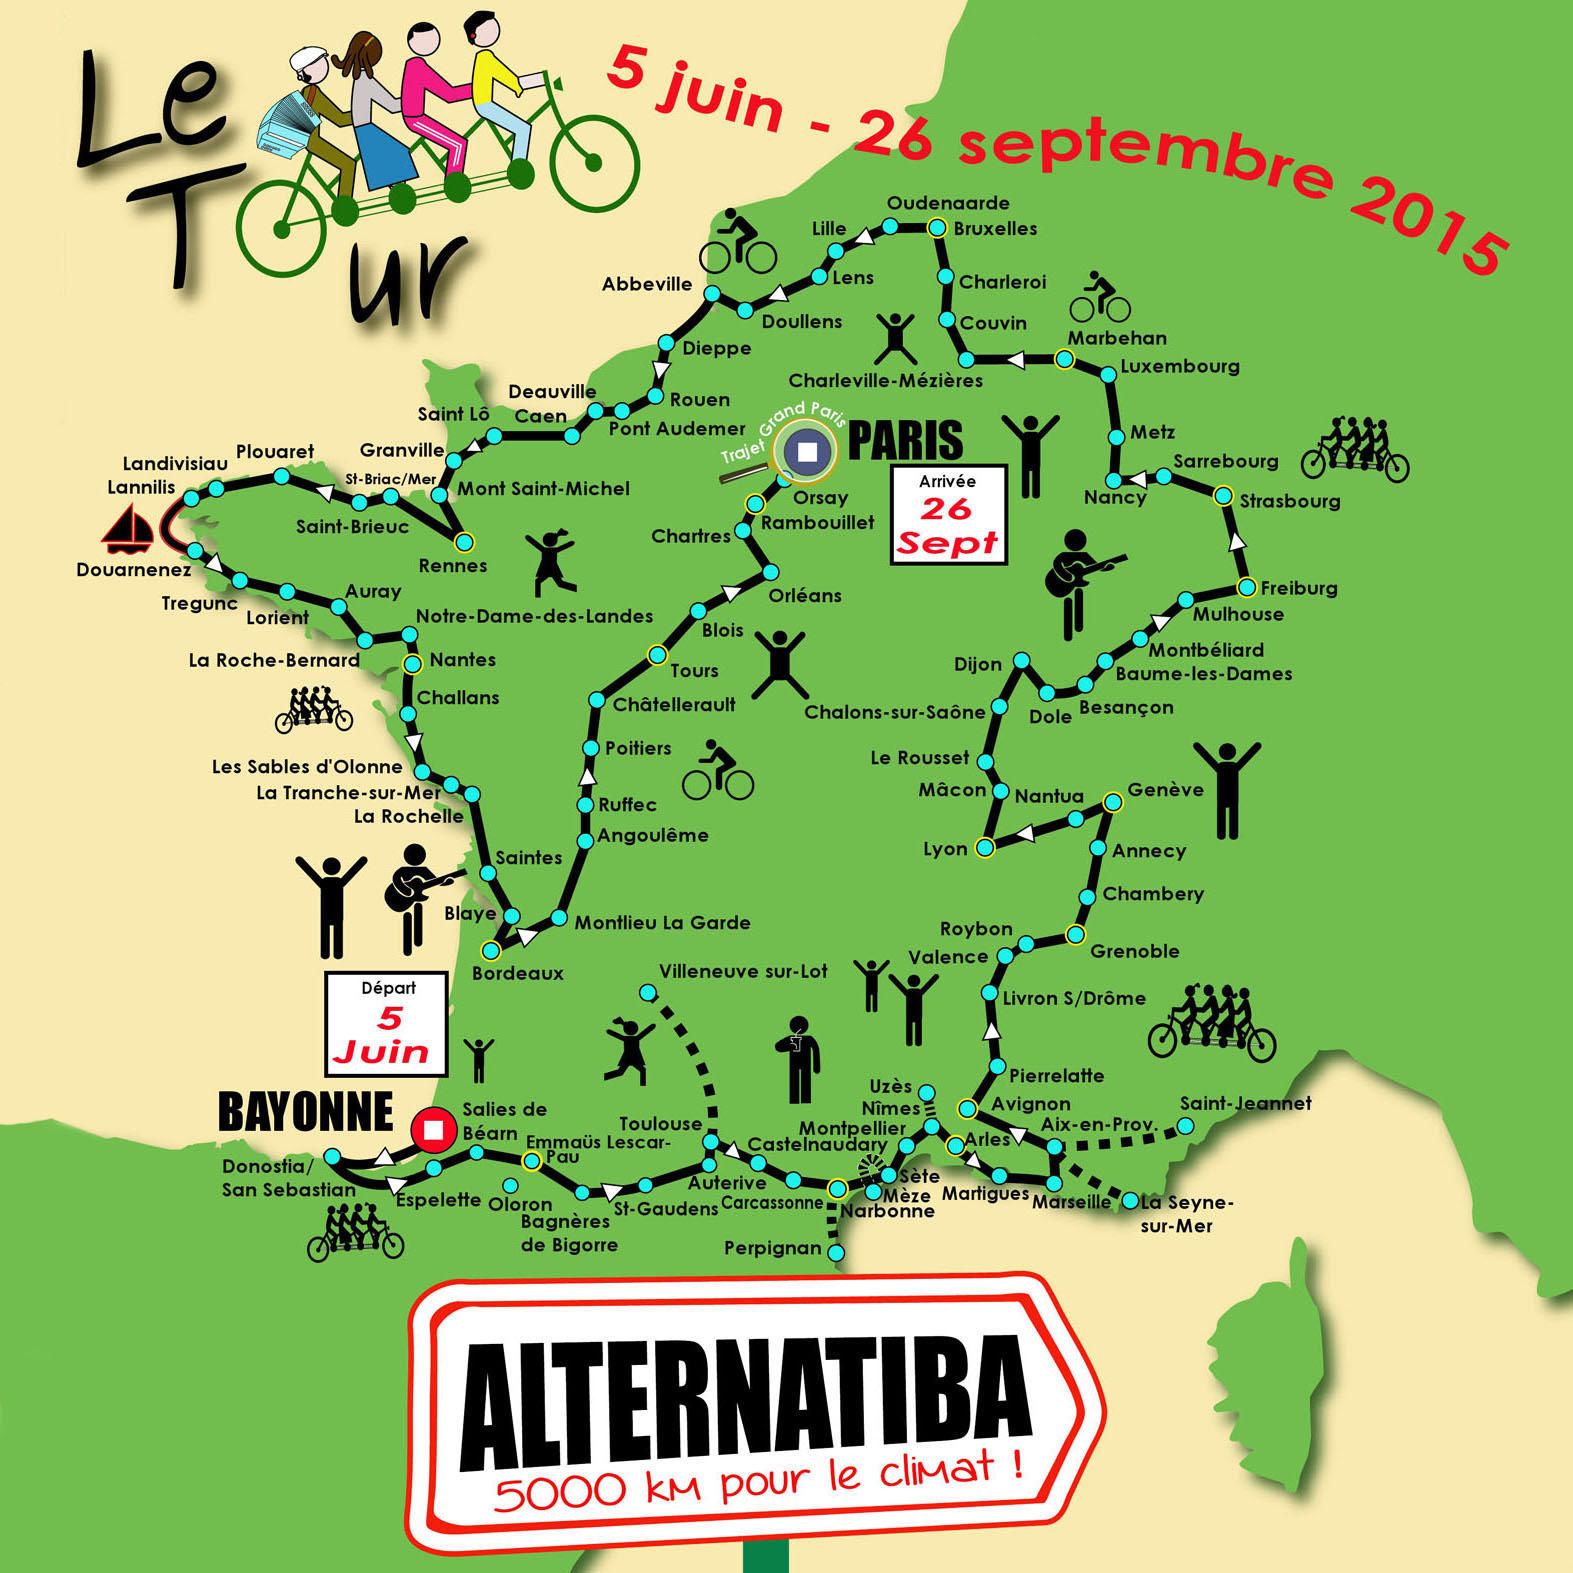 Le Tour Alternatiba